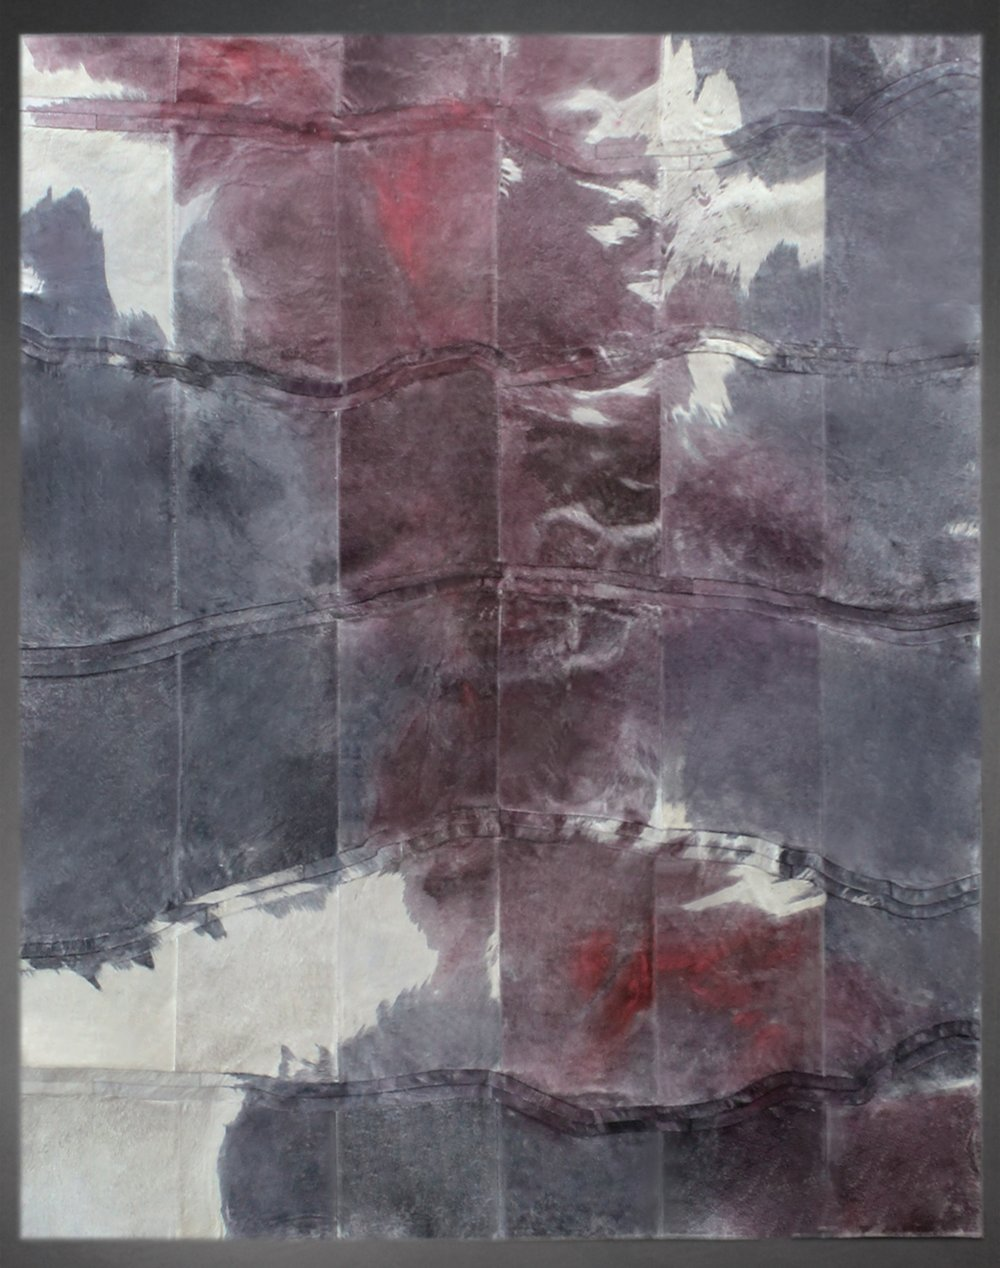 Contemporary designed fur rug in the Watercolor style by Yerra in light stone, gray and red.